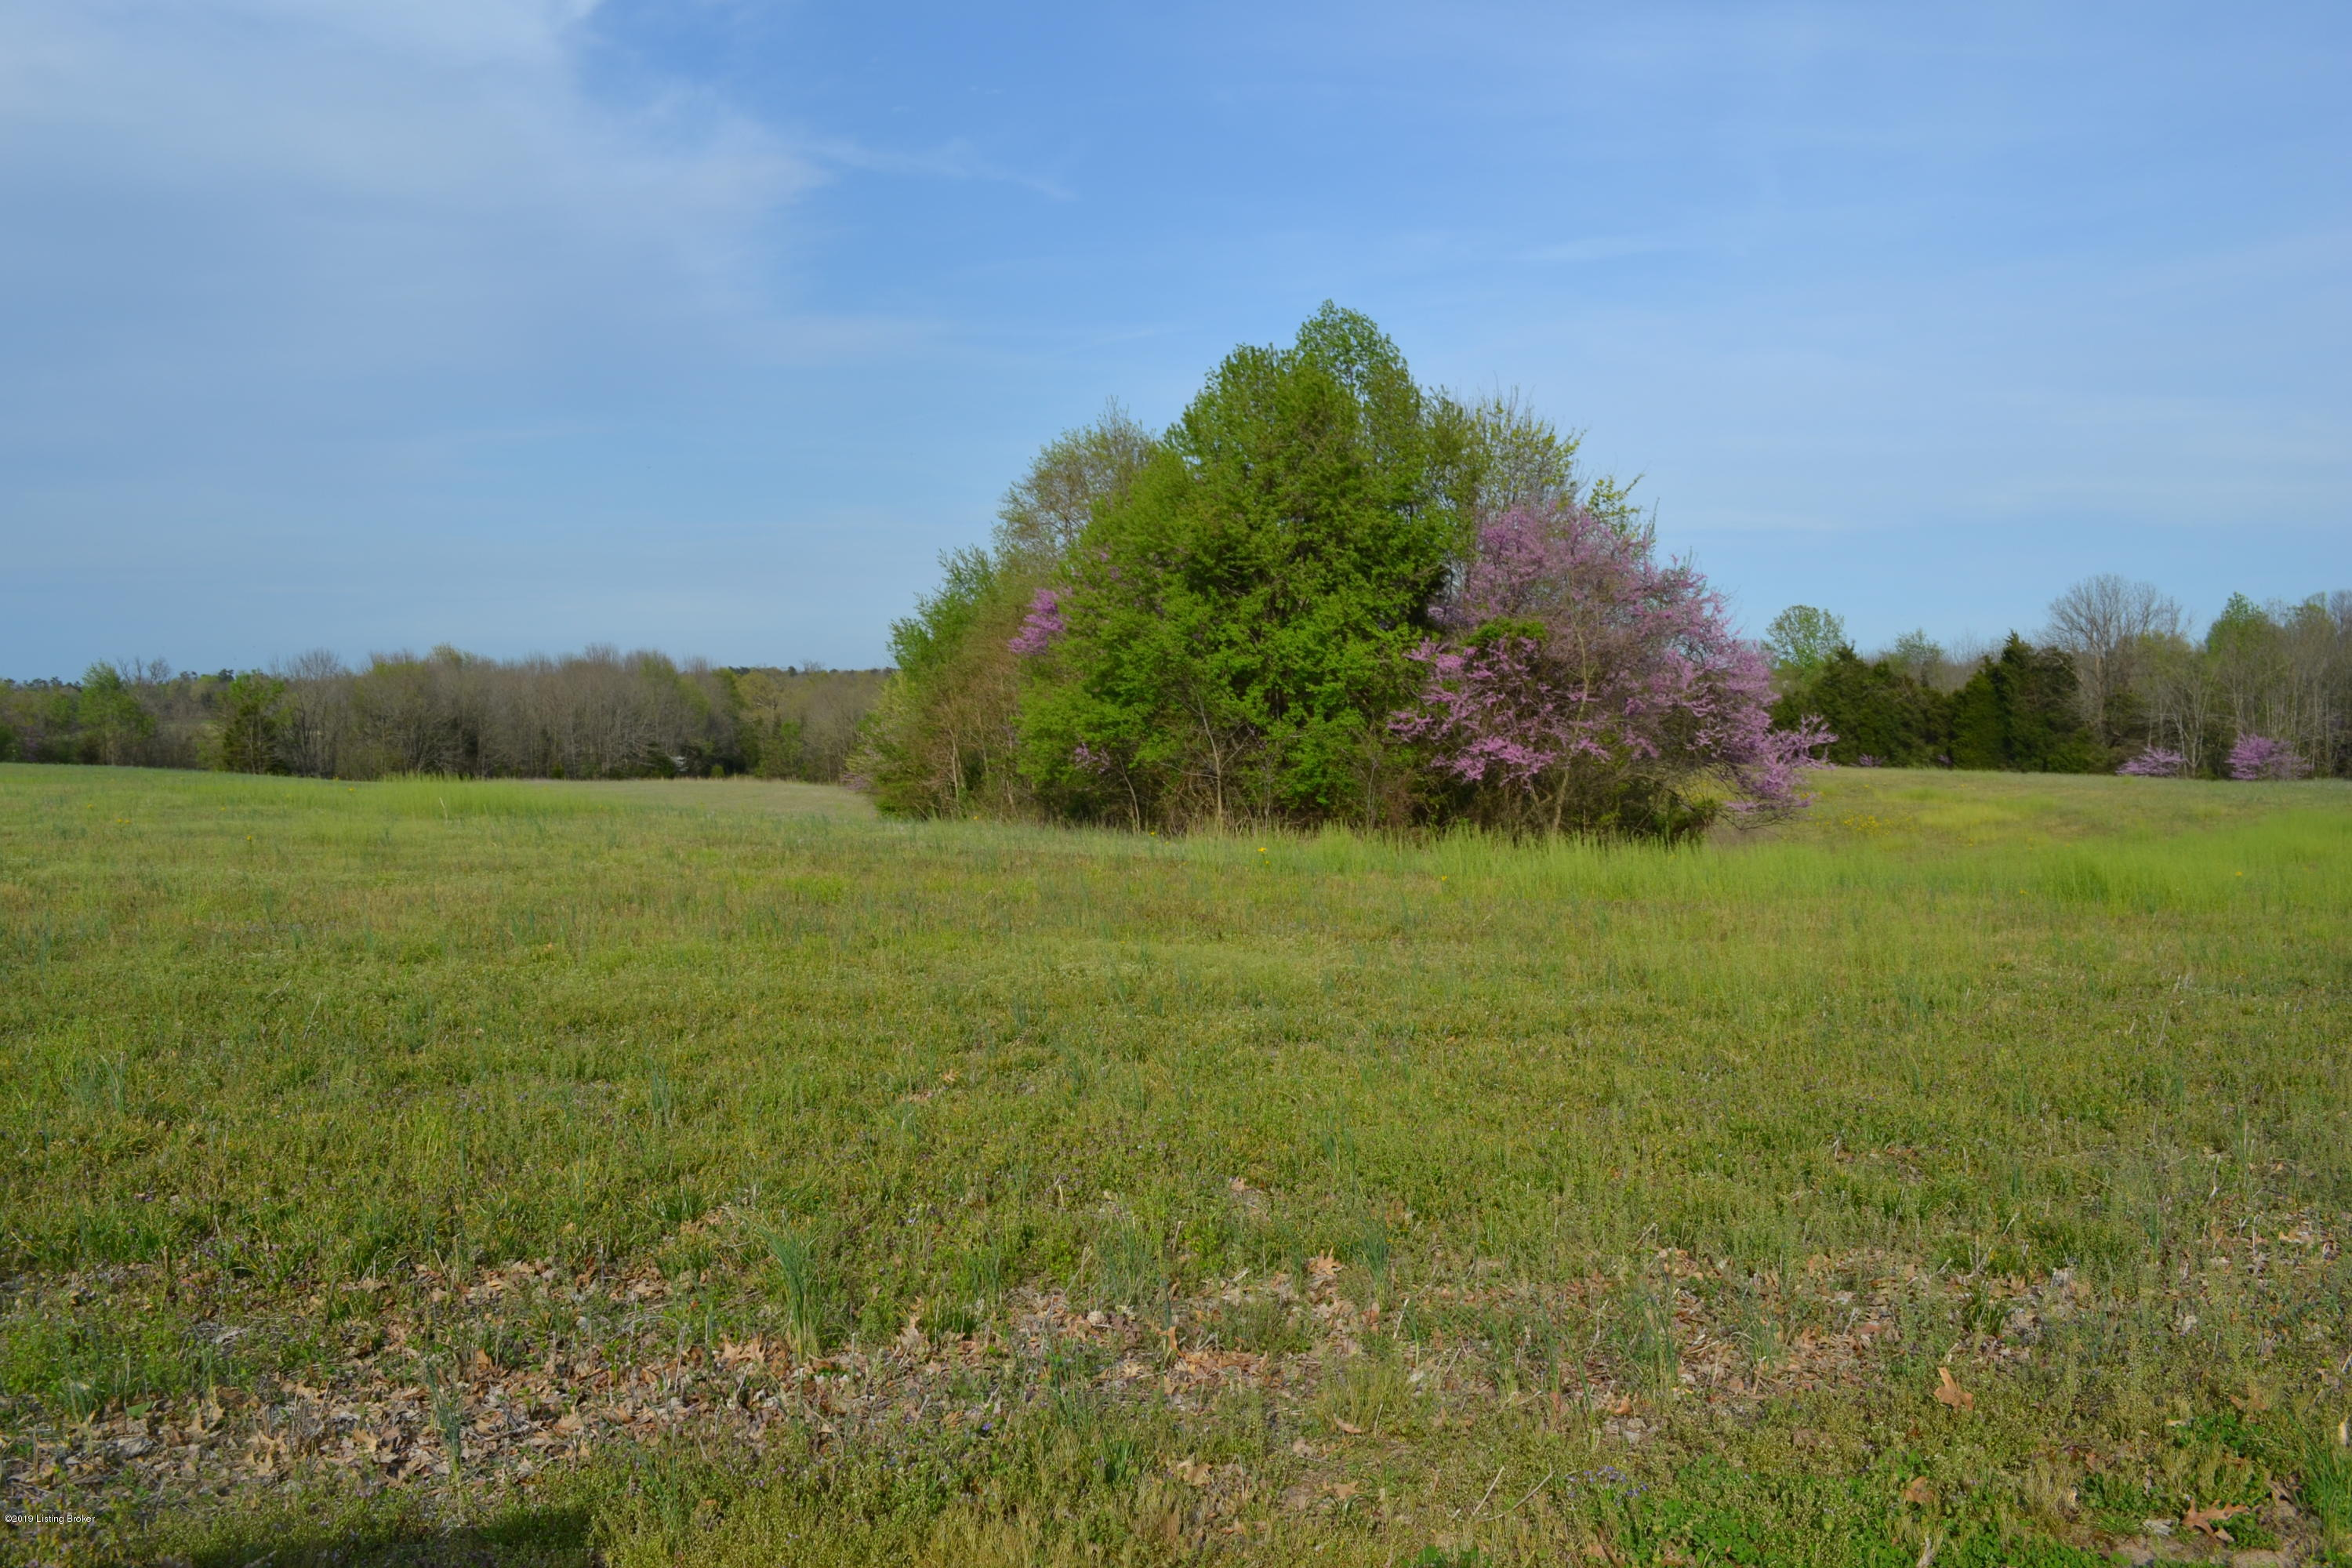 330 Gregory Church Rd, Coxs Creek, Kentucky 40013, 2 Bedrooms Bedrooms, 4 Rooms Rooms,1 BathroomBathrooms,Residential,For Sale,Gregory Church,1530986